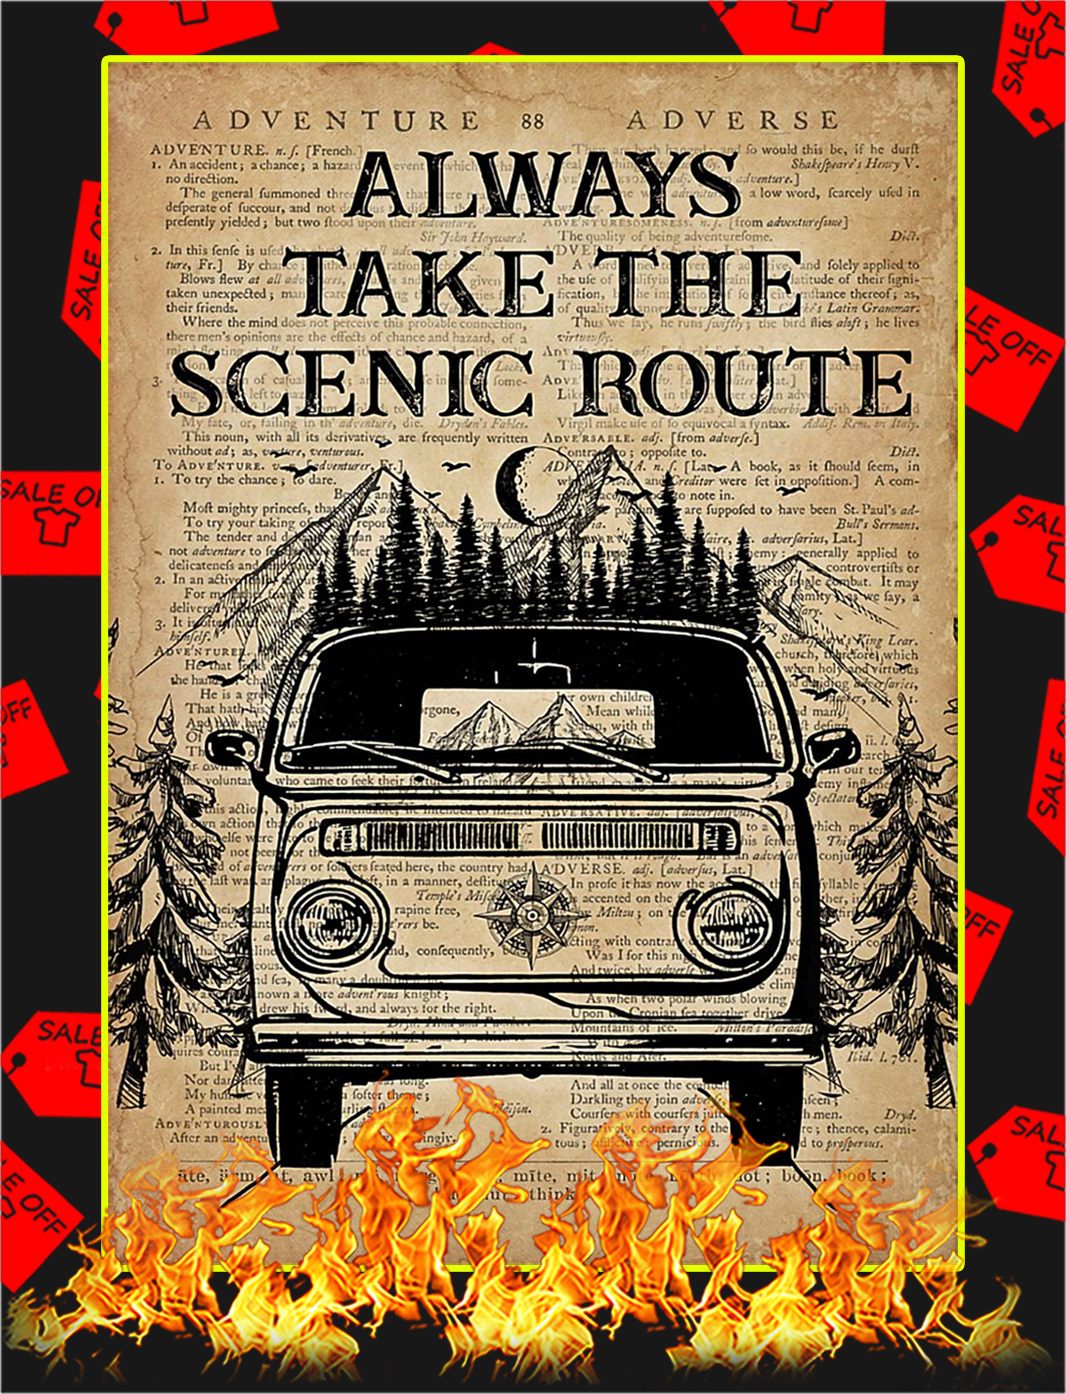 Always take the scenic route poster - A2